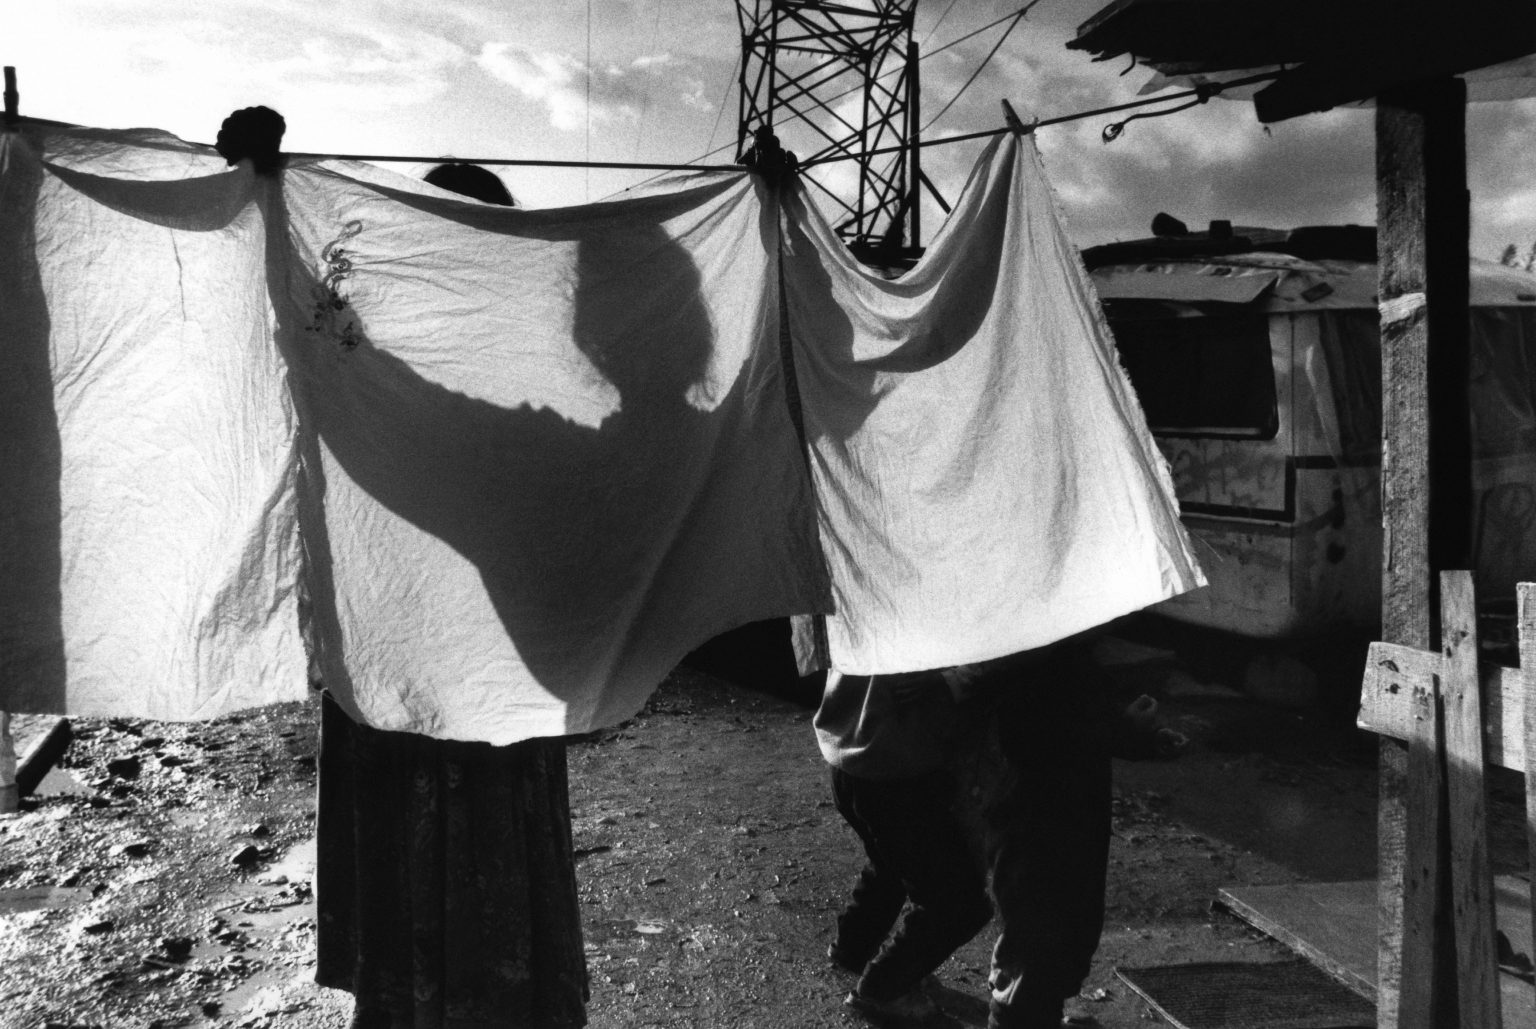 """Florence , 1993 - Nomads' camp - Gipsy woman hanging out the washing >< Firenze , 1993 - Campo nomadi - Zingara stende il bucato<p><span style=""""color: #ff0000""""><strong>*** SPECIAL   FEE   APPLIES ***</strong></span></p>"""